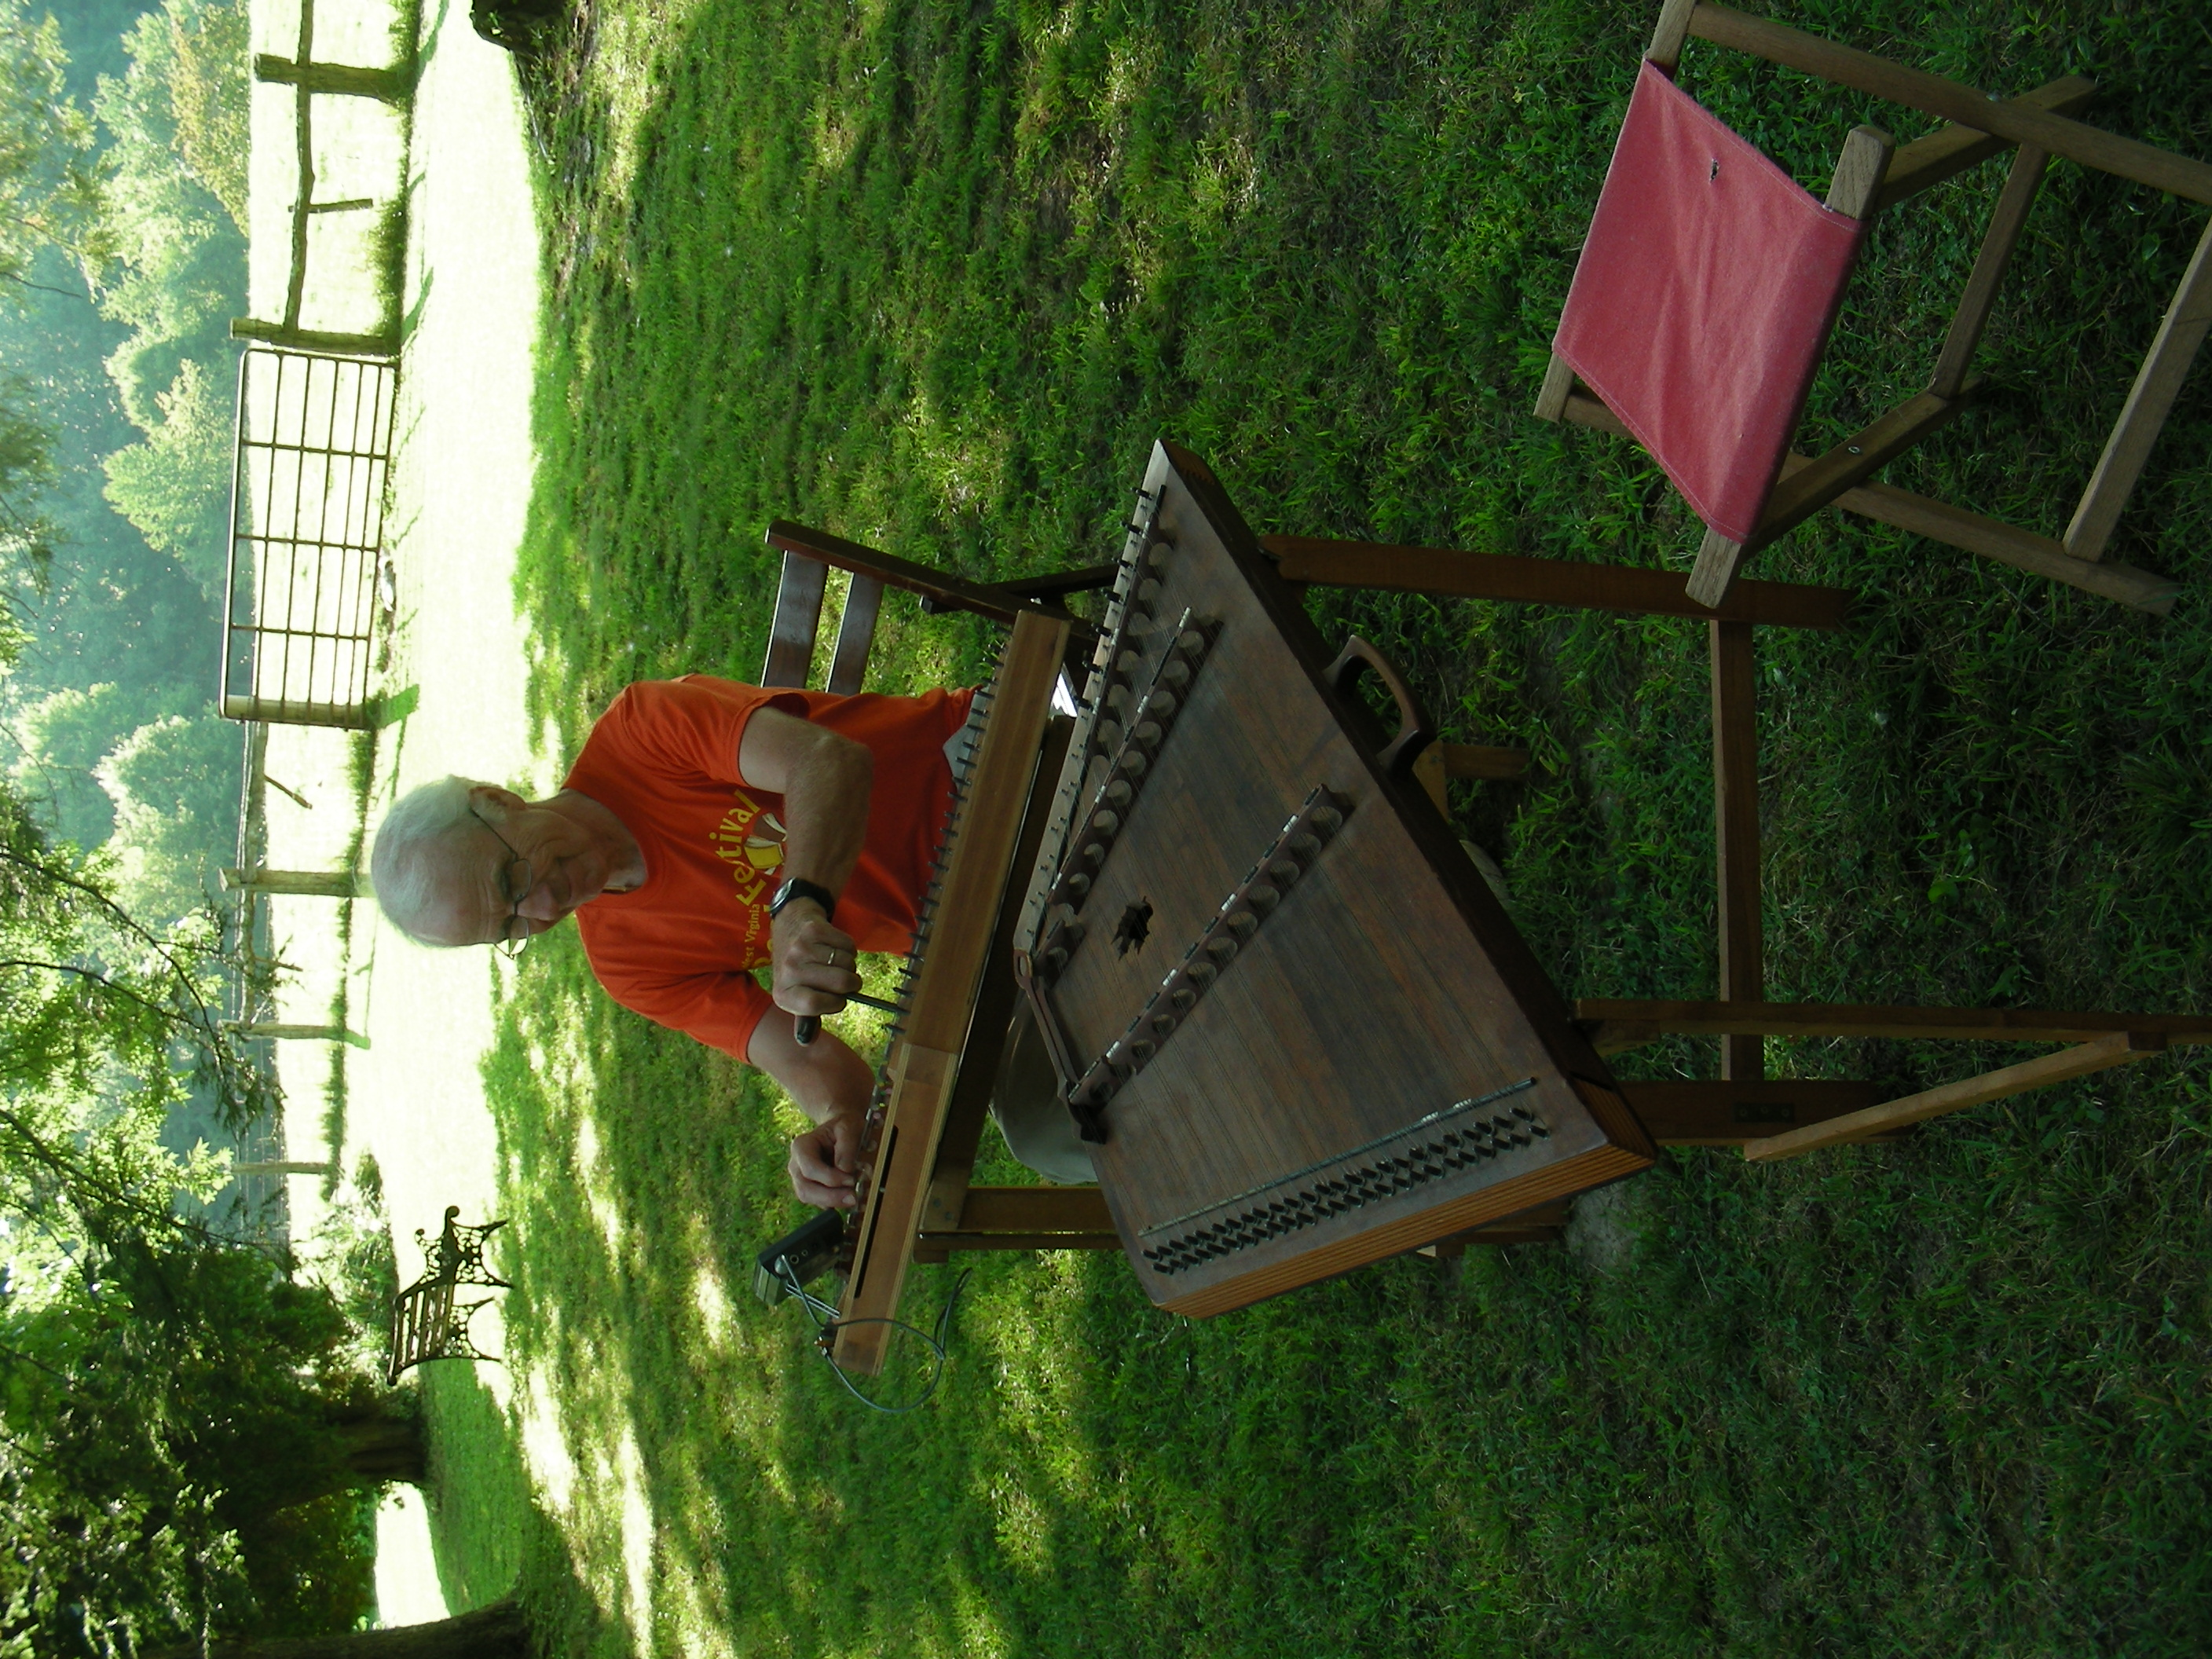 John tuning the hammered dulcimers in the yard